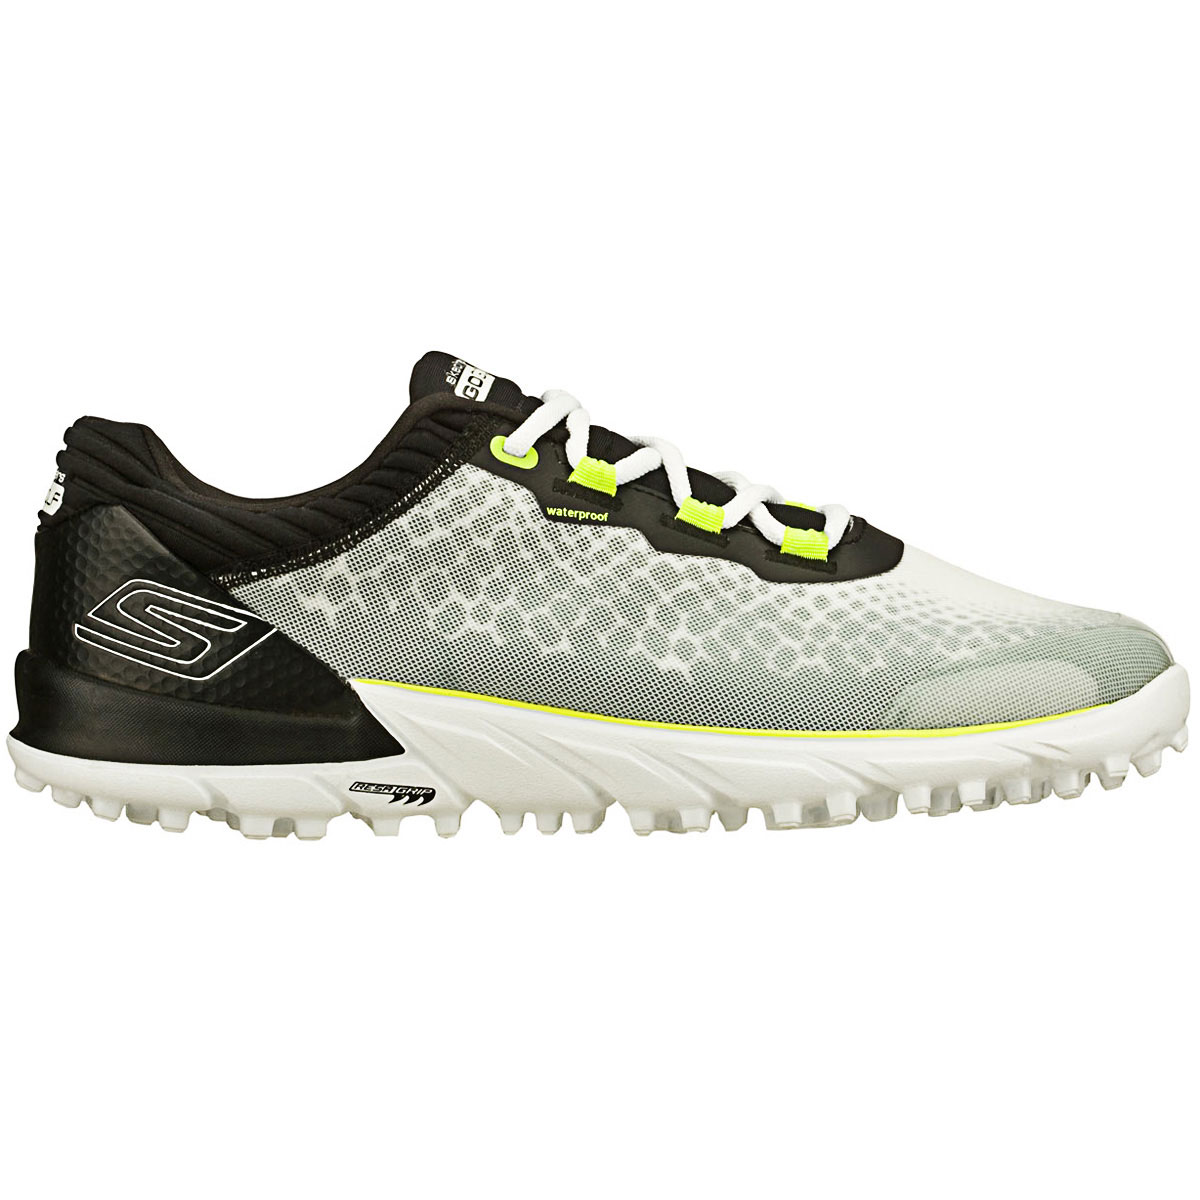 Skechers Go Golf Bionic  Golf Shoes